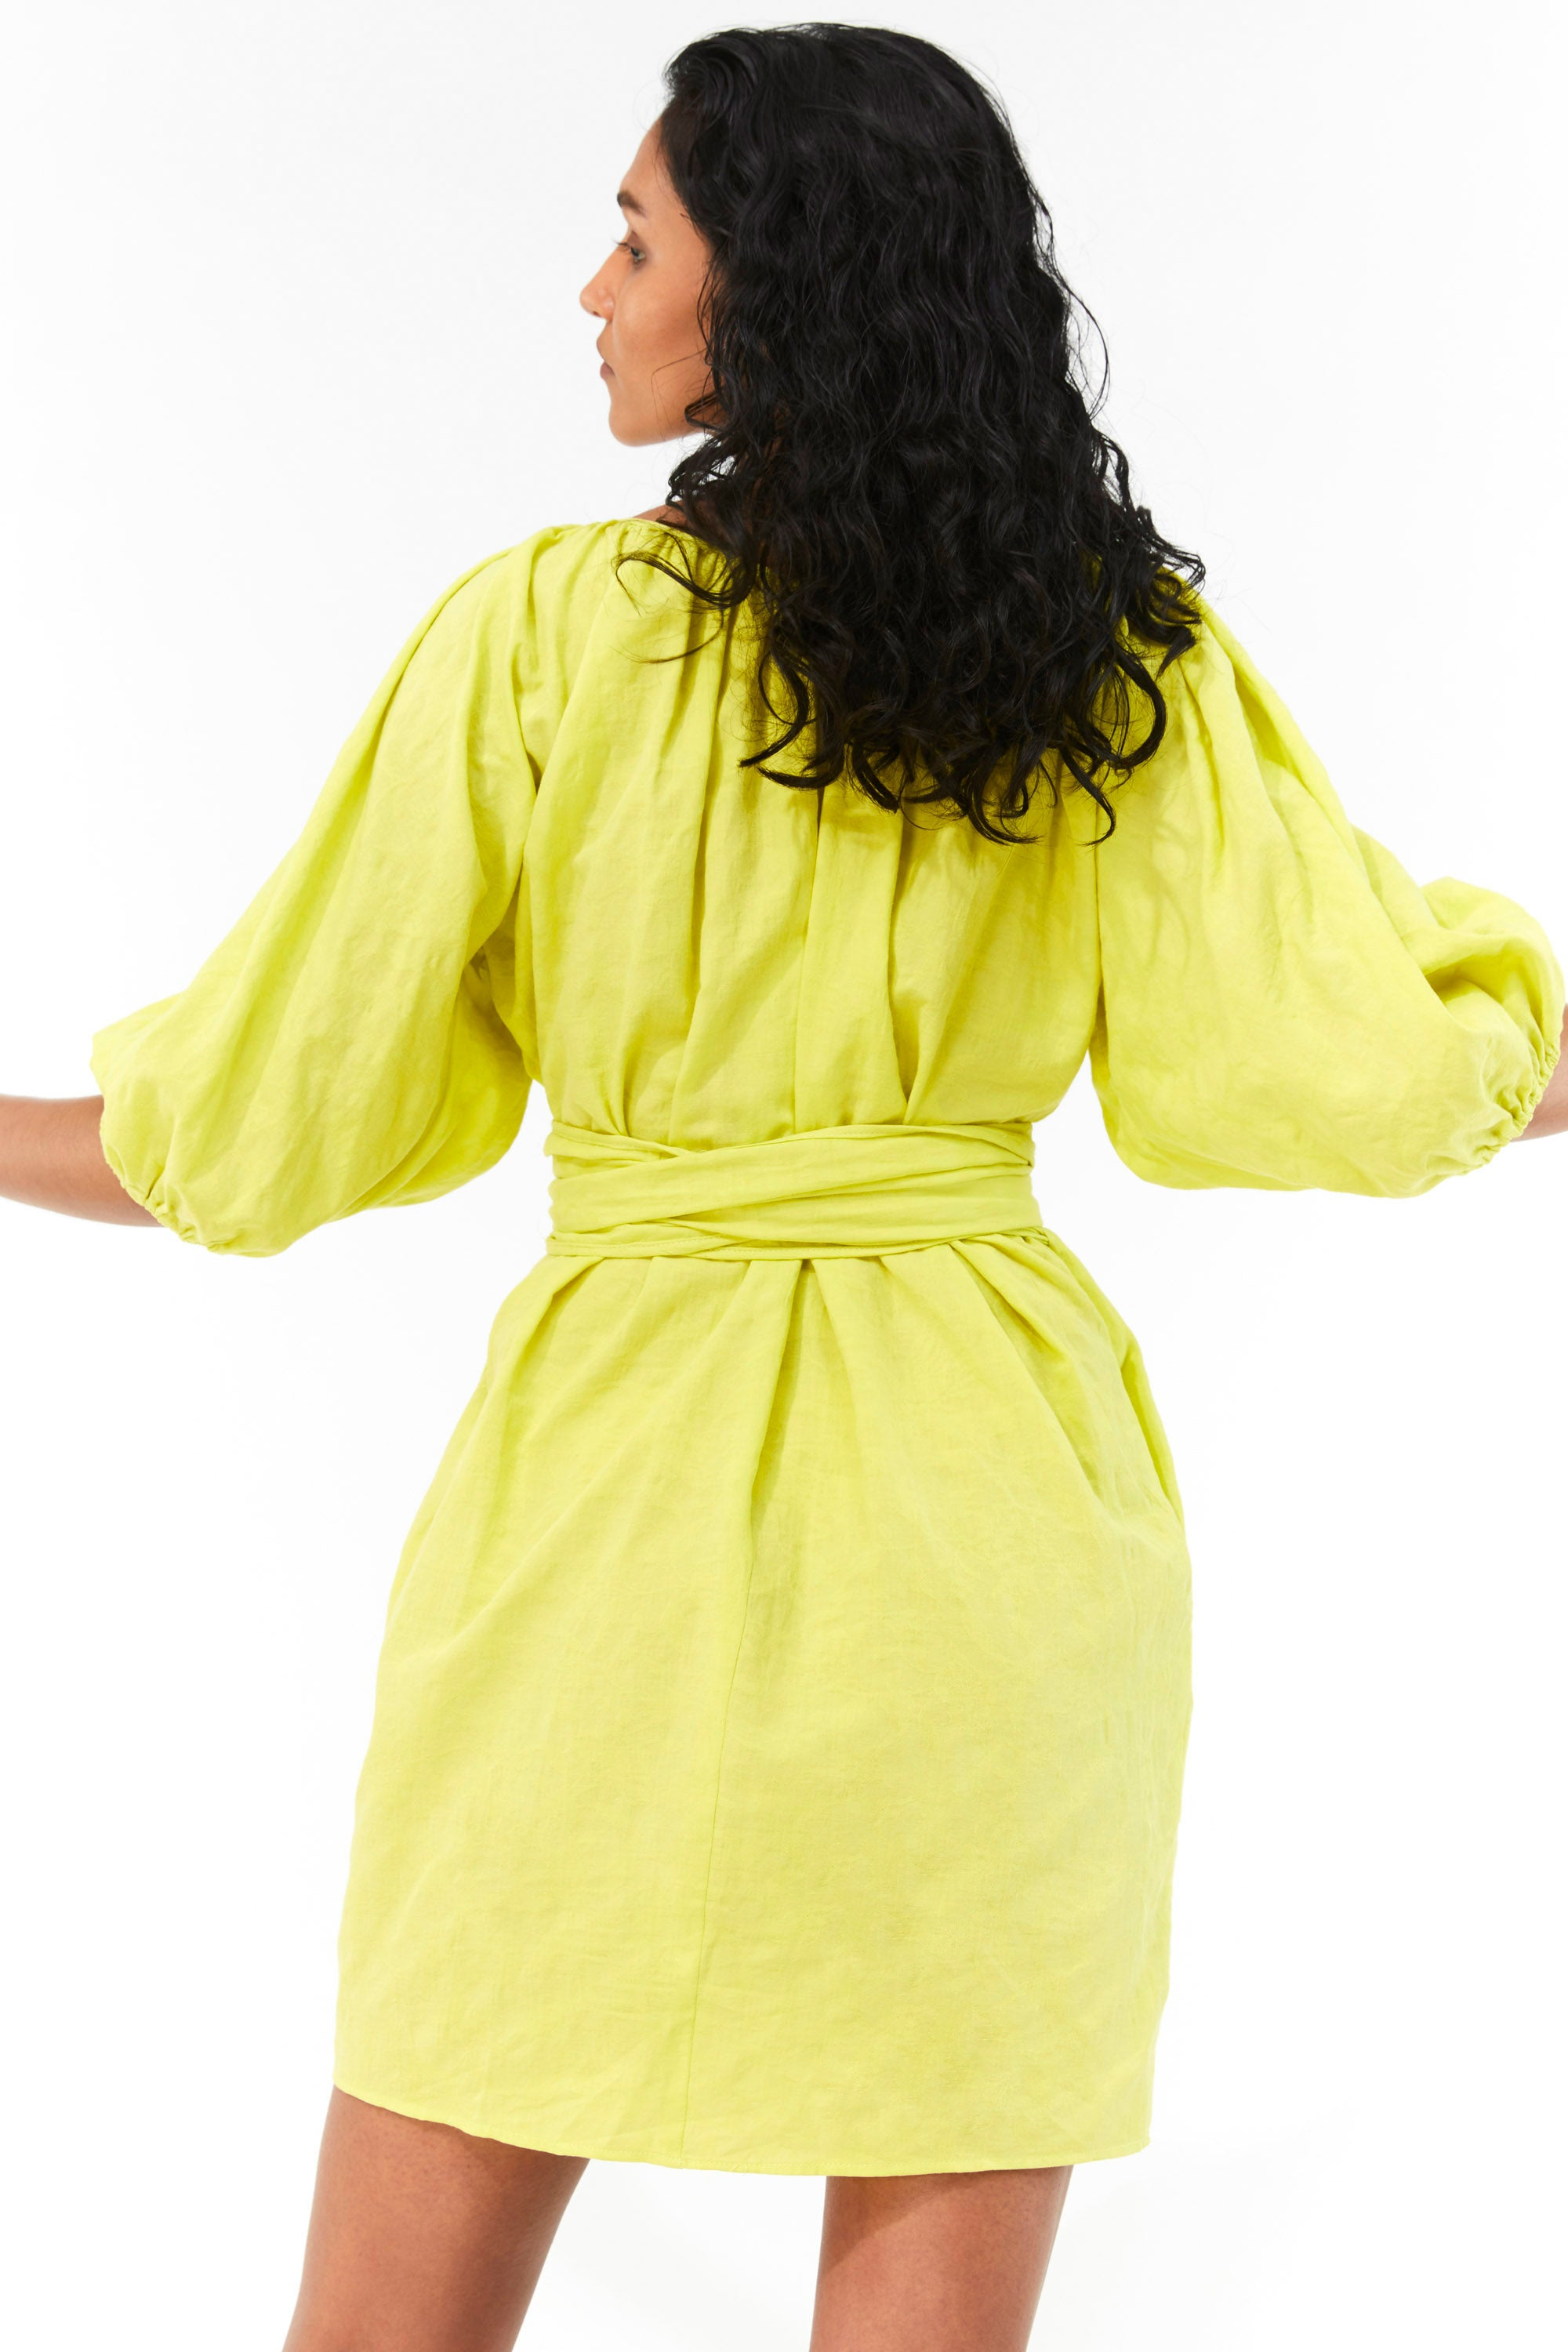 Mara Hoffman Neon Green Coletta Cover Up Dress in organic cotton and linen (back)